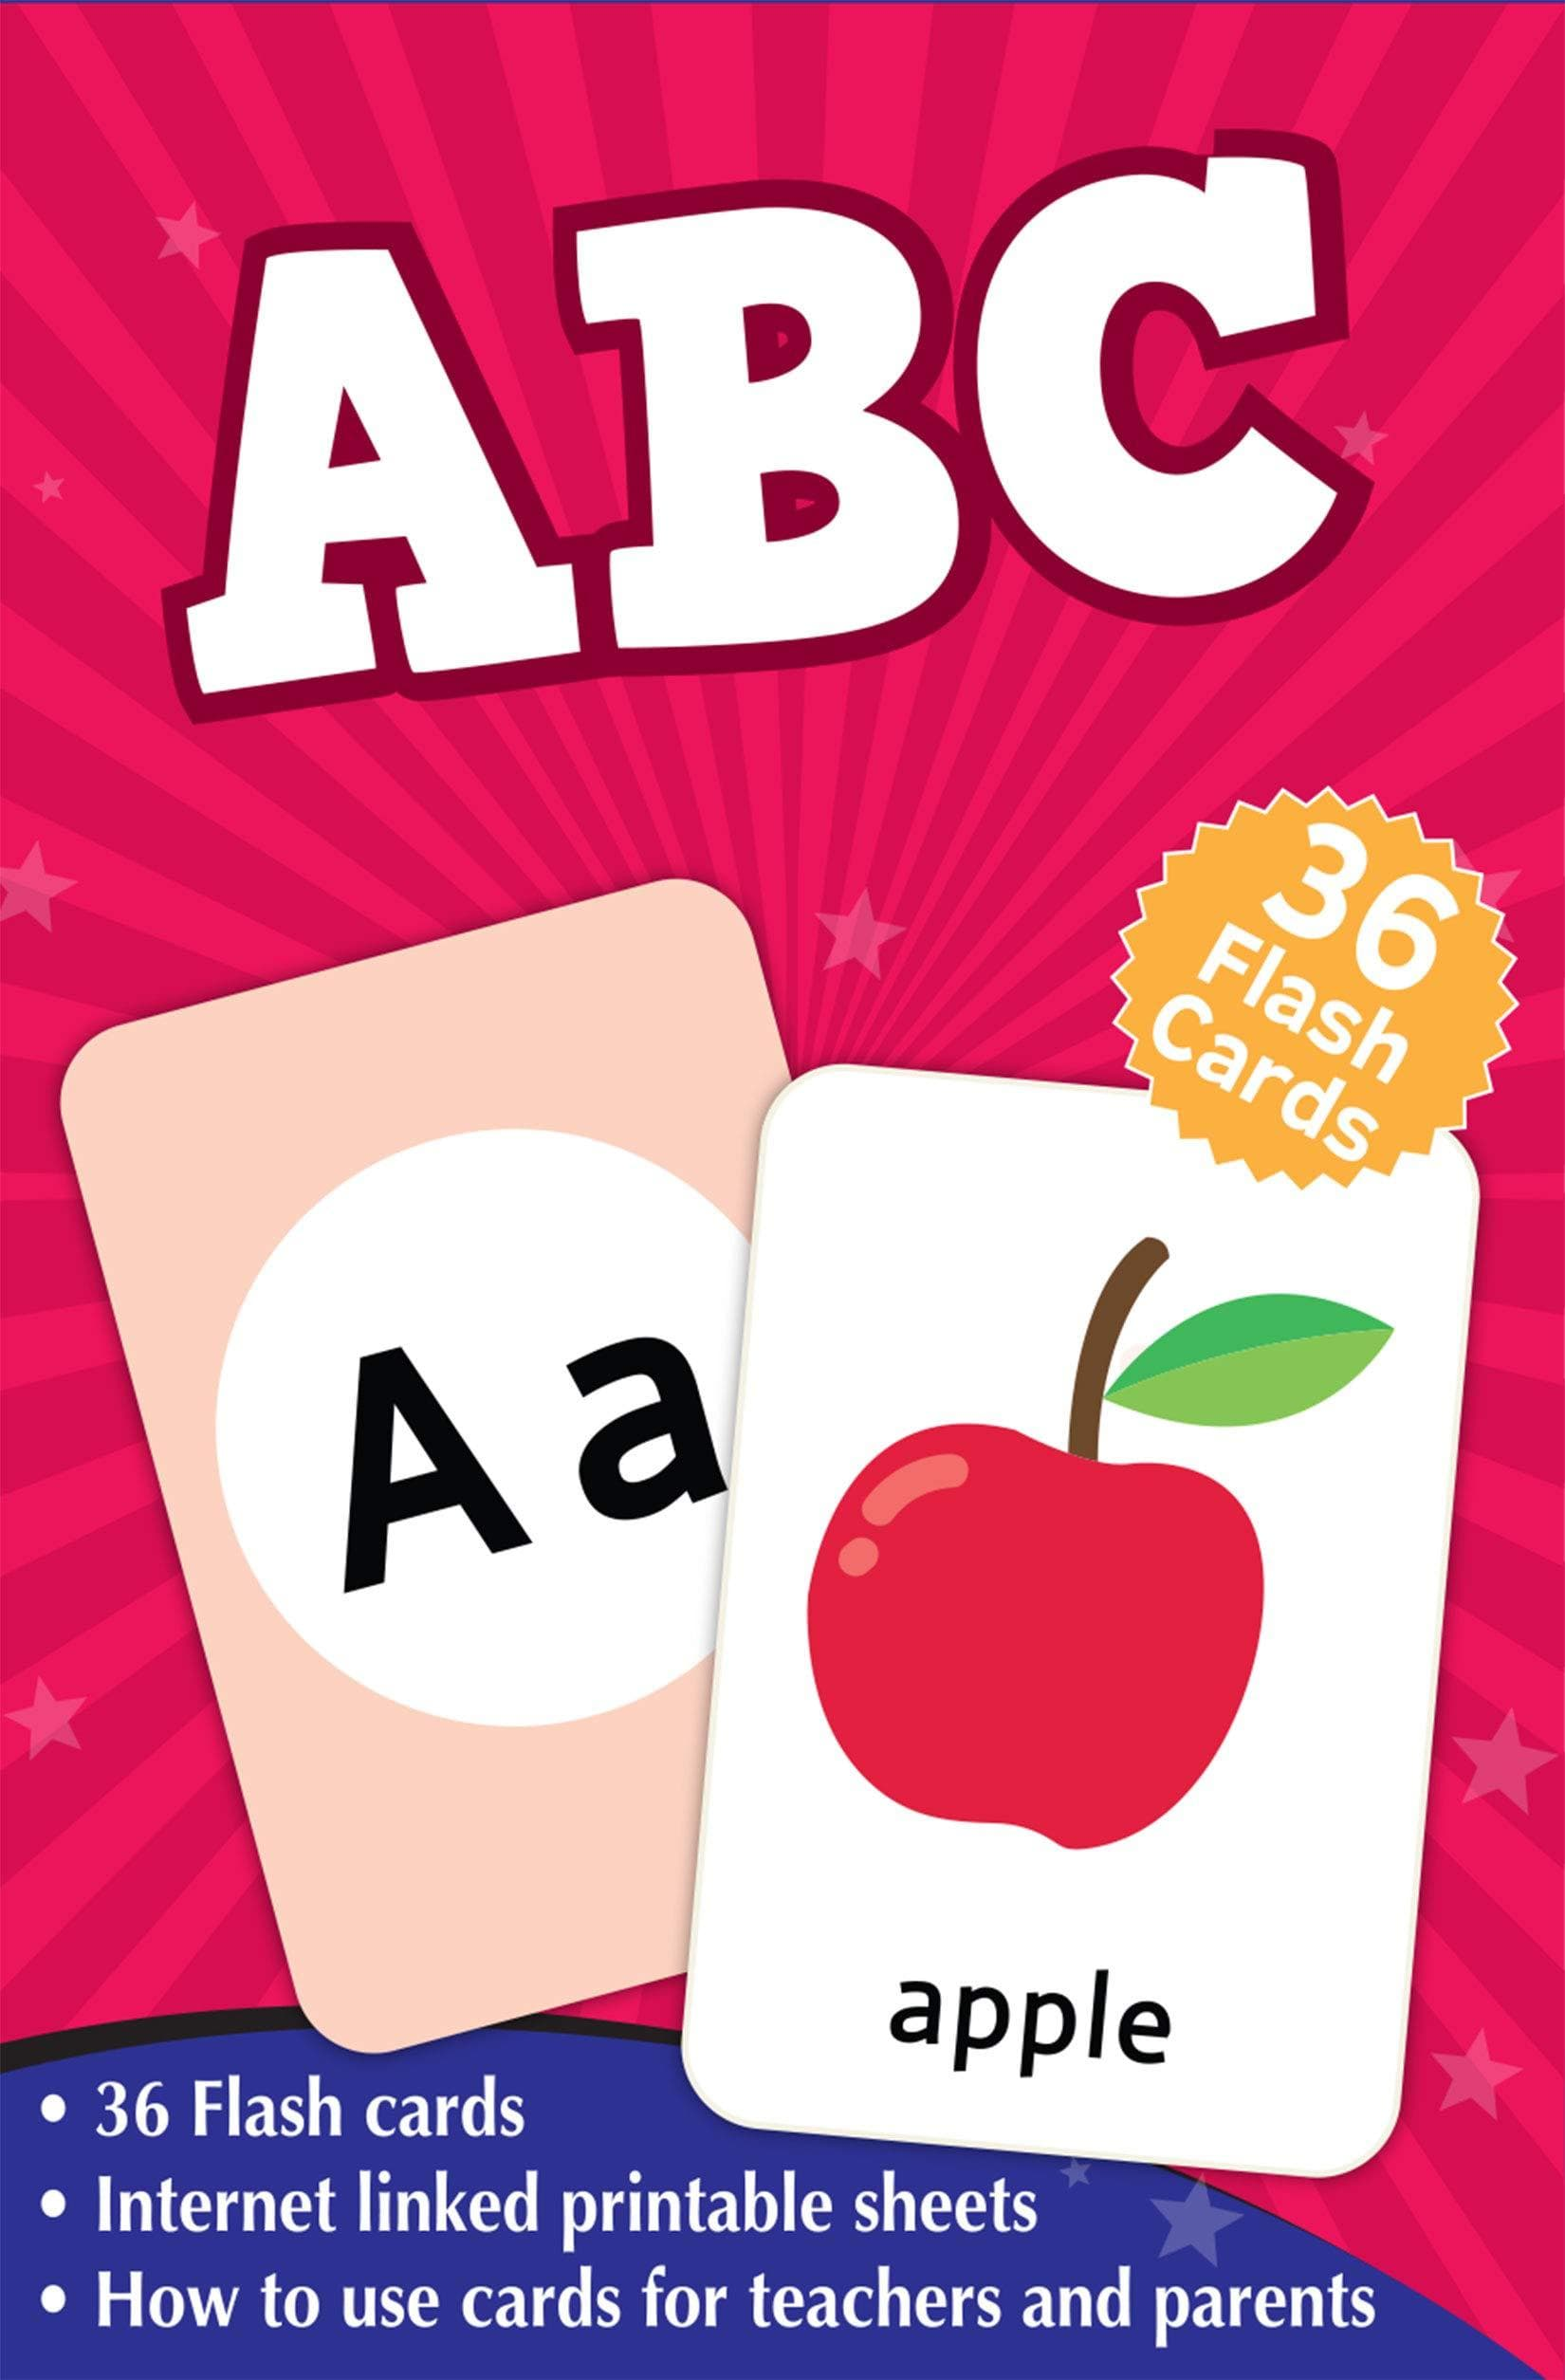 My First Flash Cards - ABC